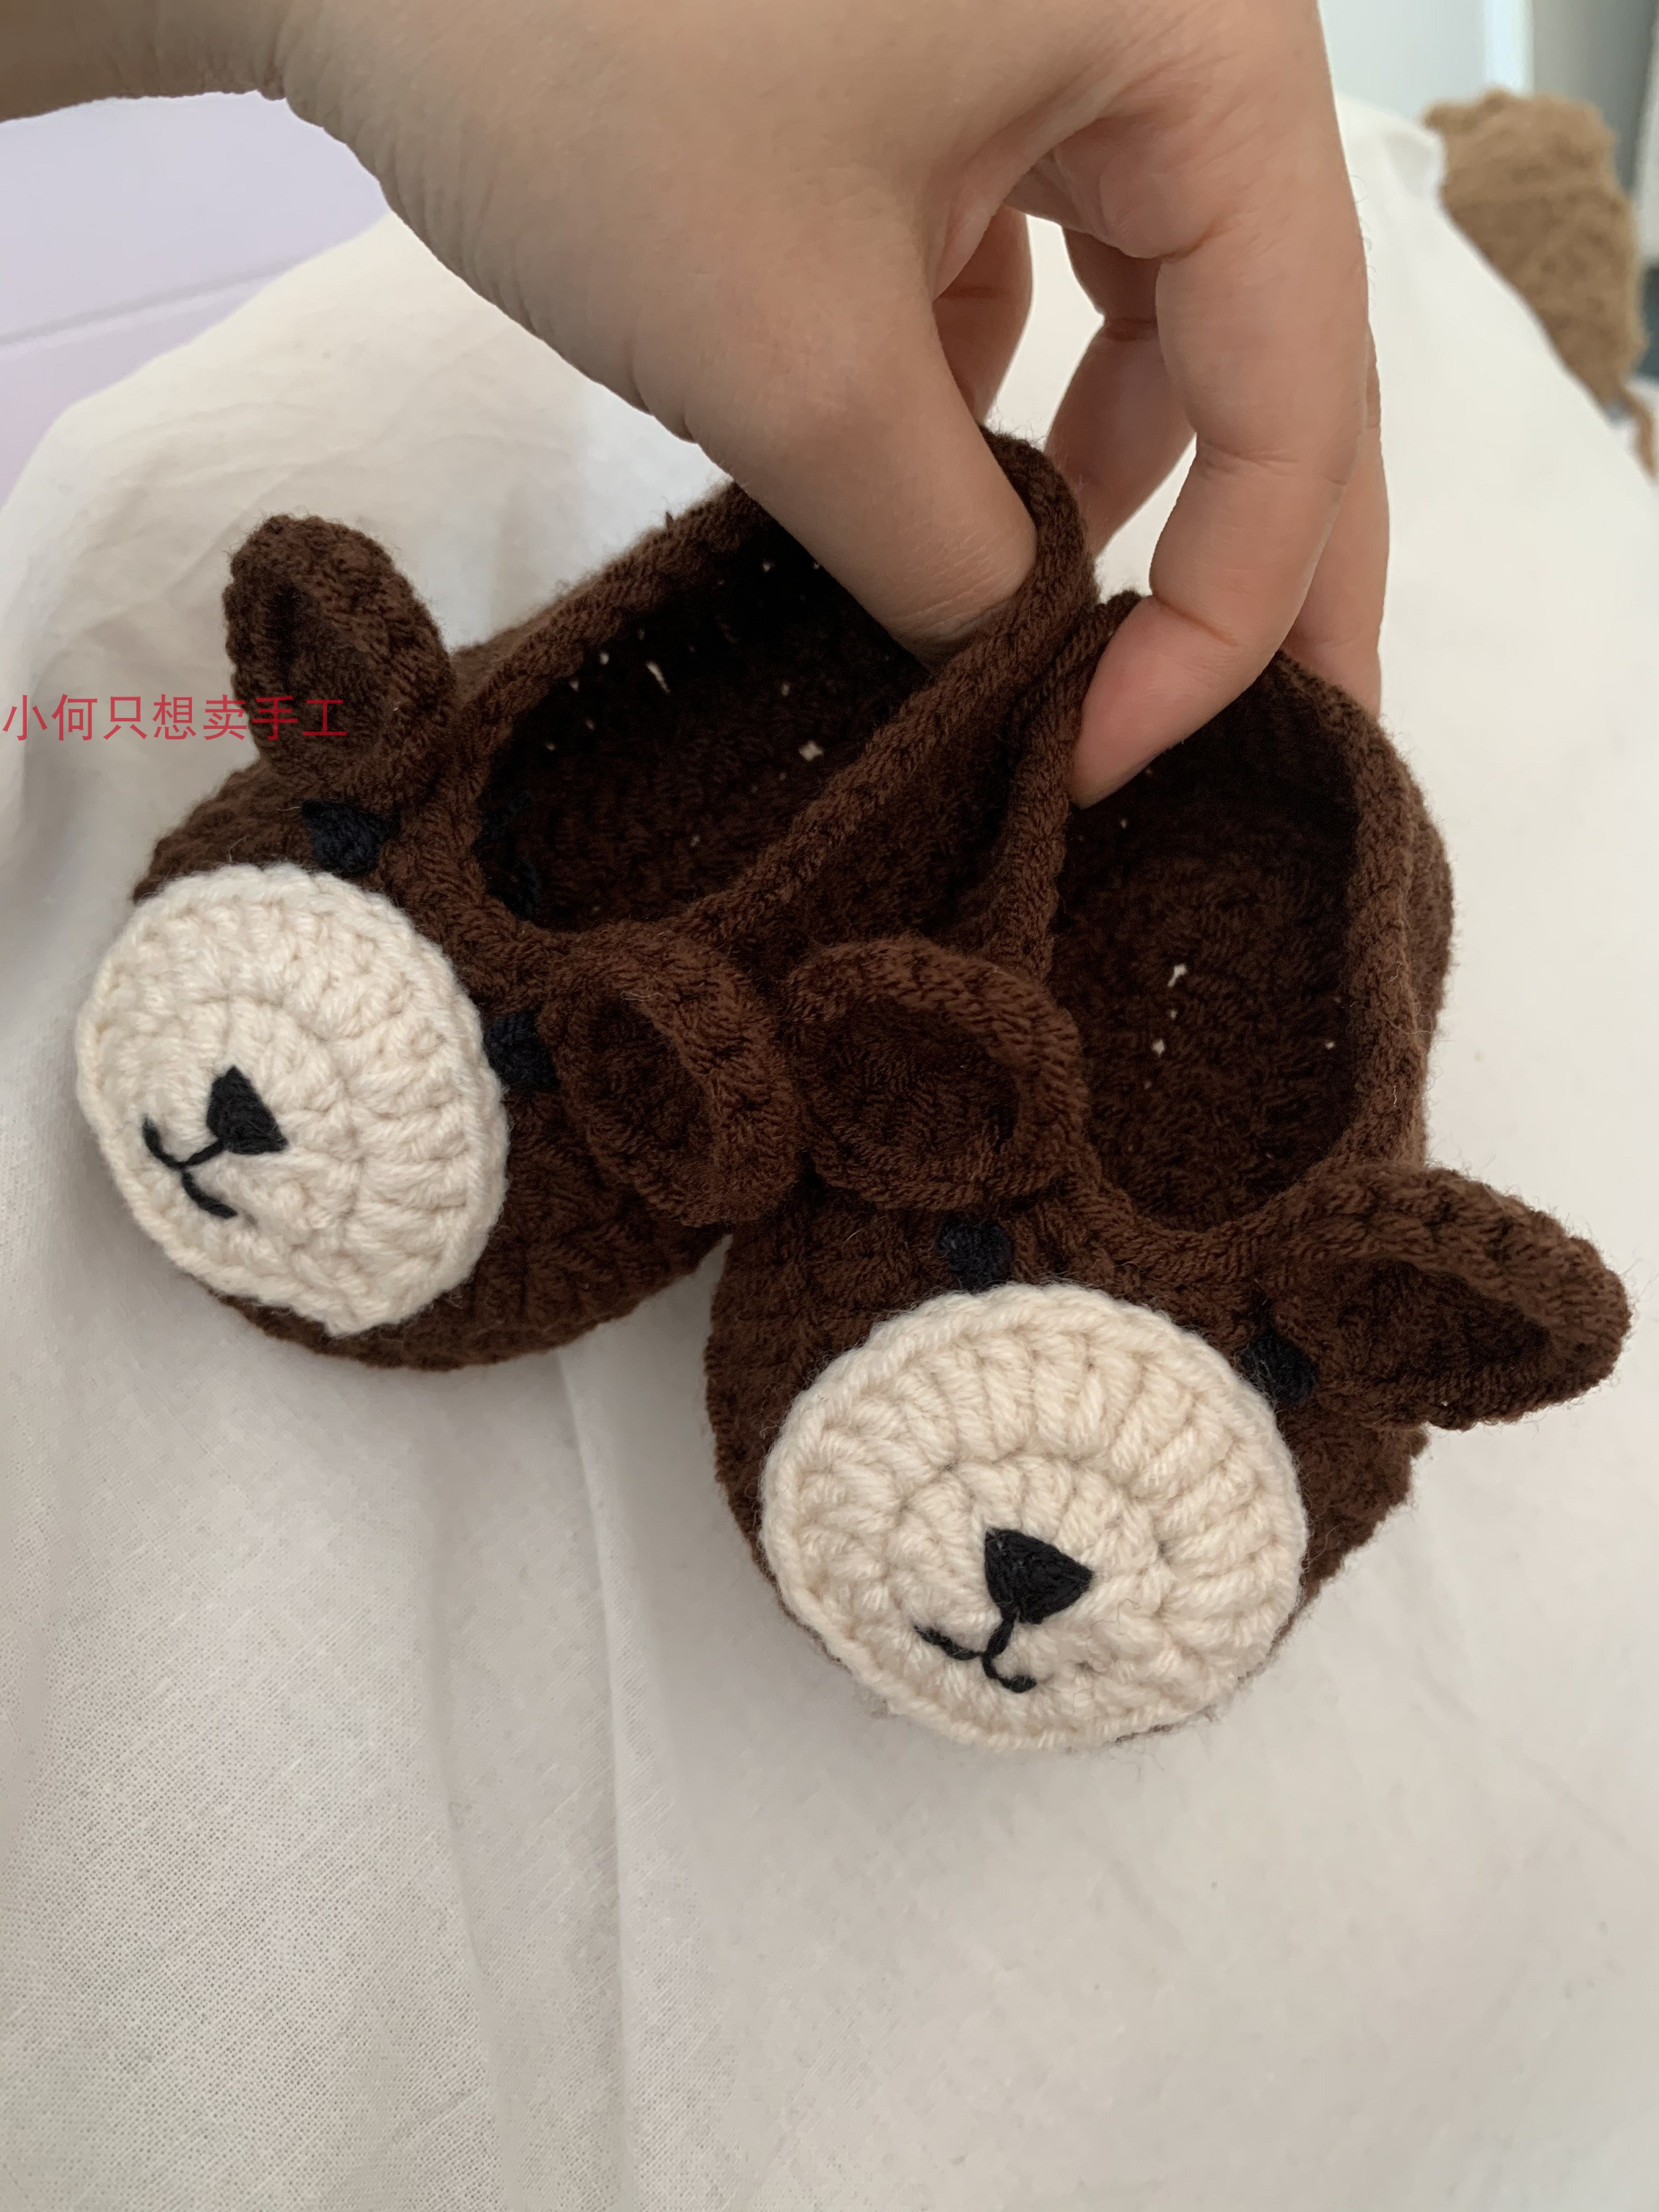 Hand-Woven Brown Bear Baby Shoes Wool Crocheted Baby Toddler Shoes Soft Sole Shoes Men And Women Baby Cute